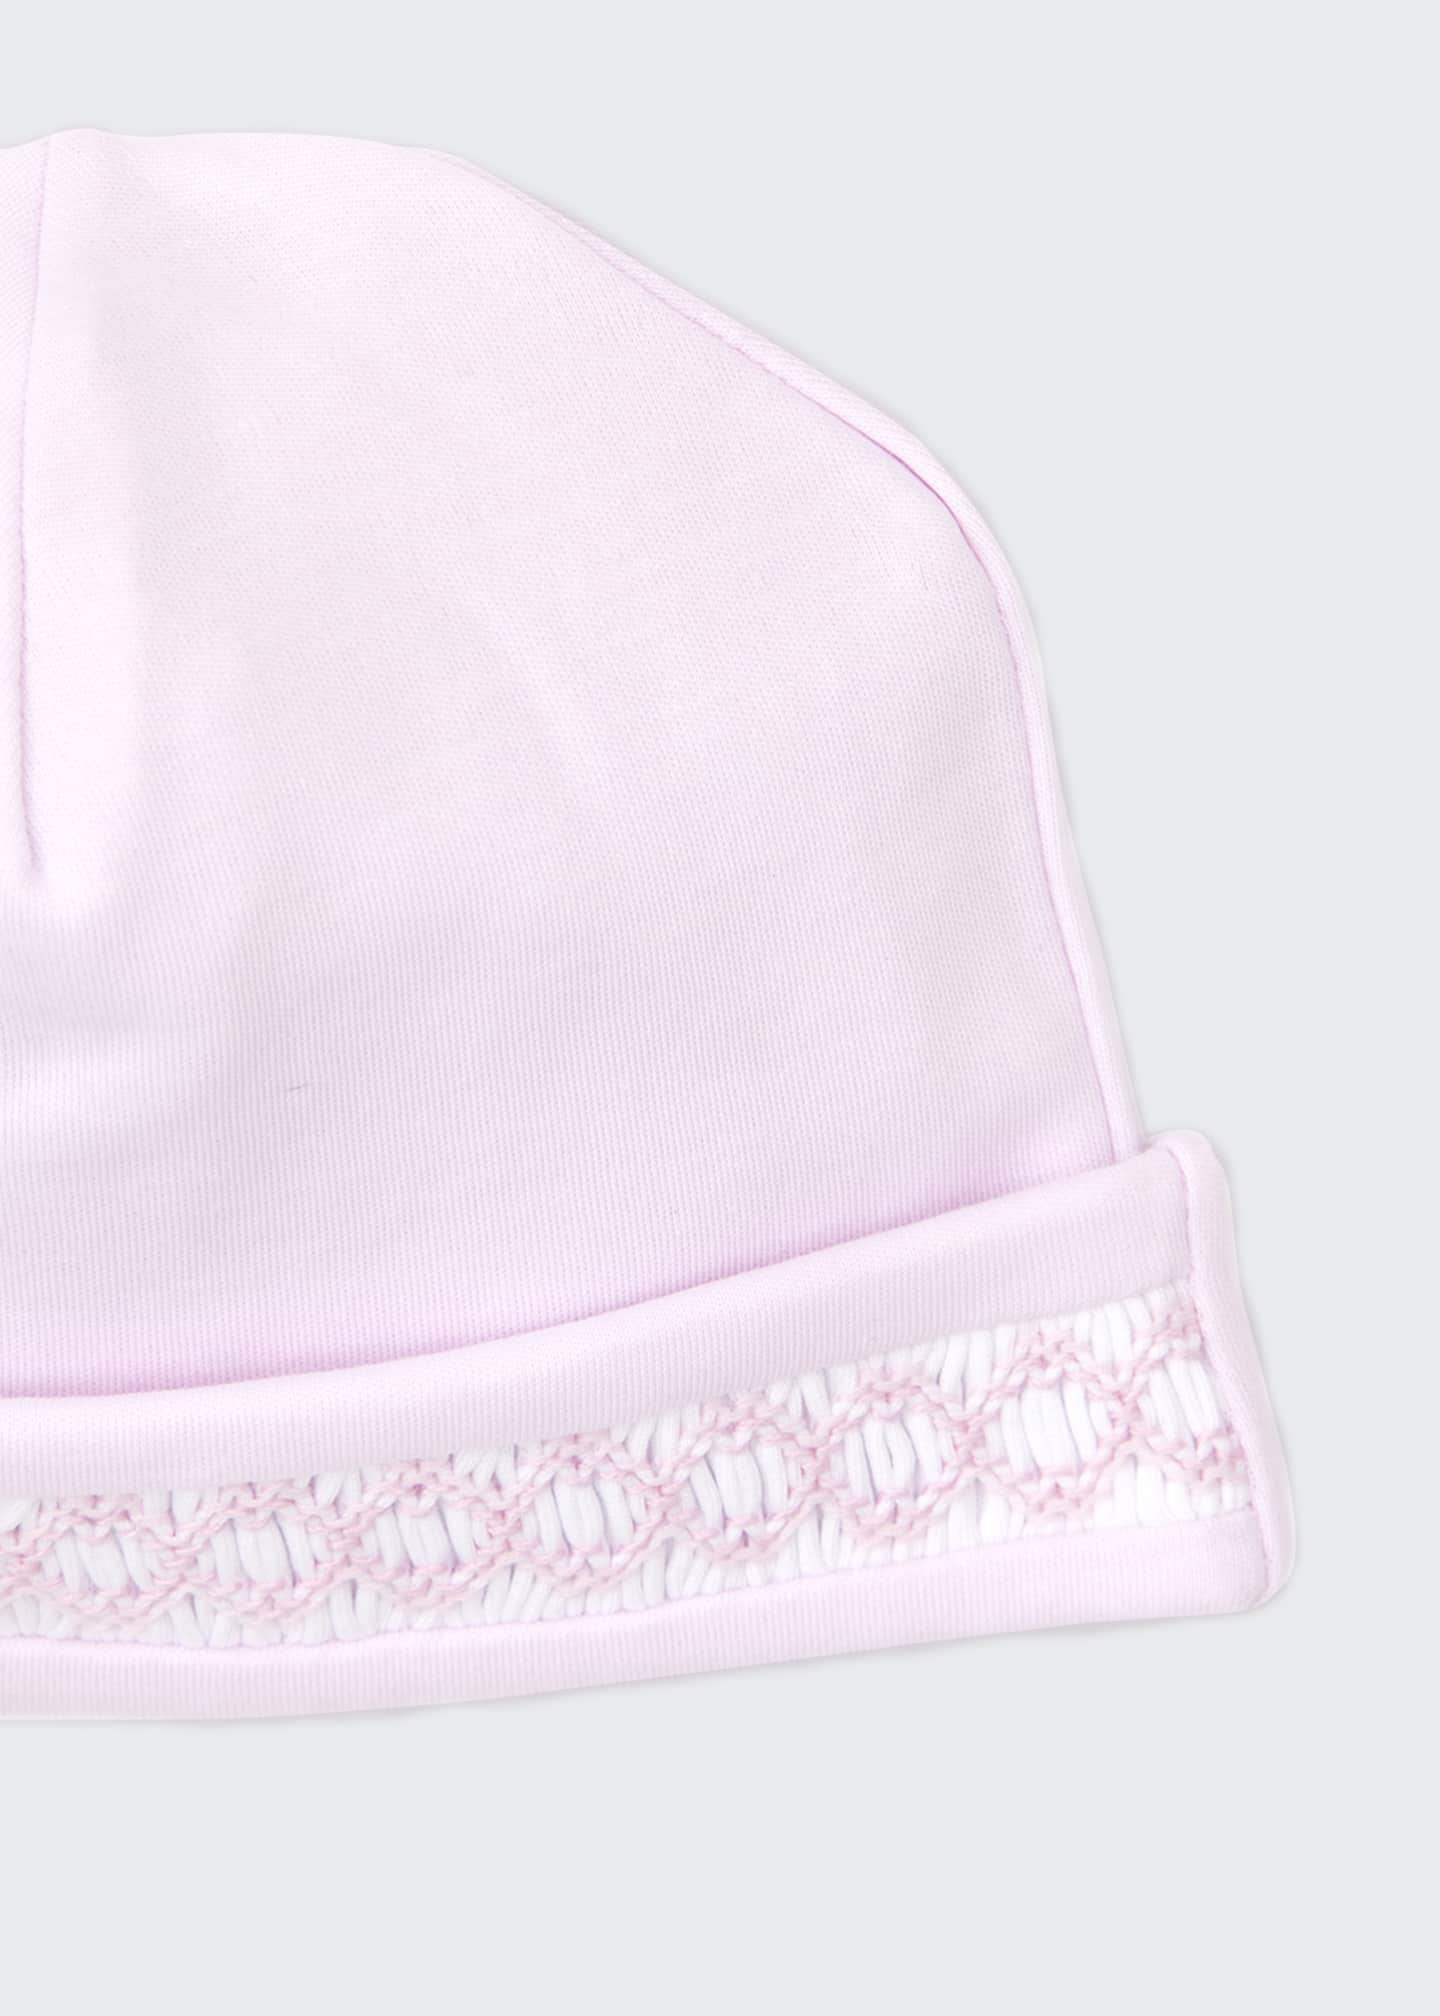 Image 3 of 3: CLB Fall Pink Pima Baby Hat